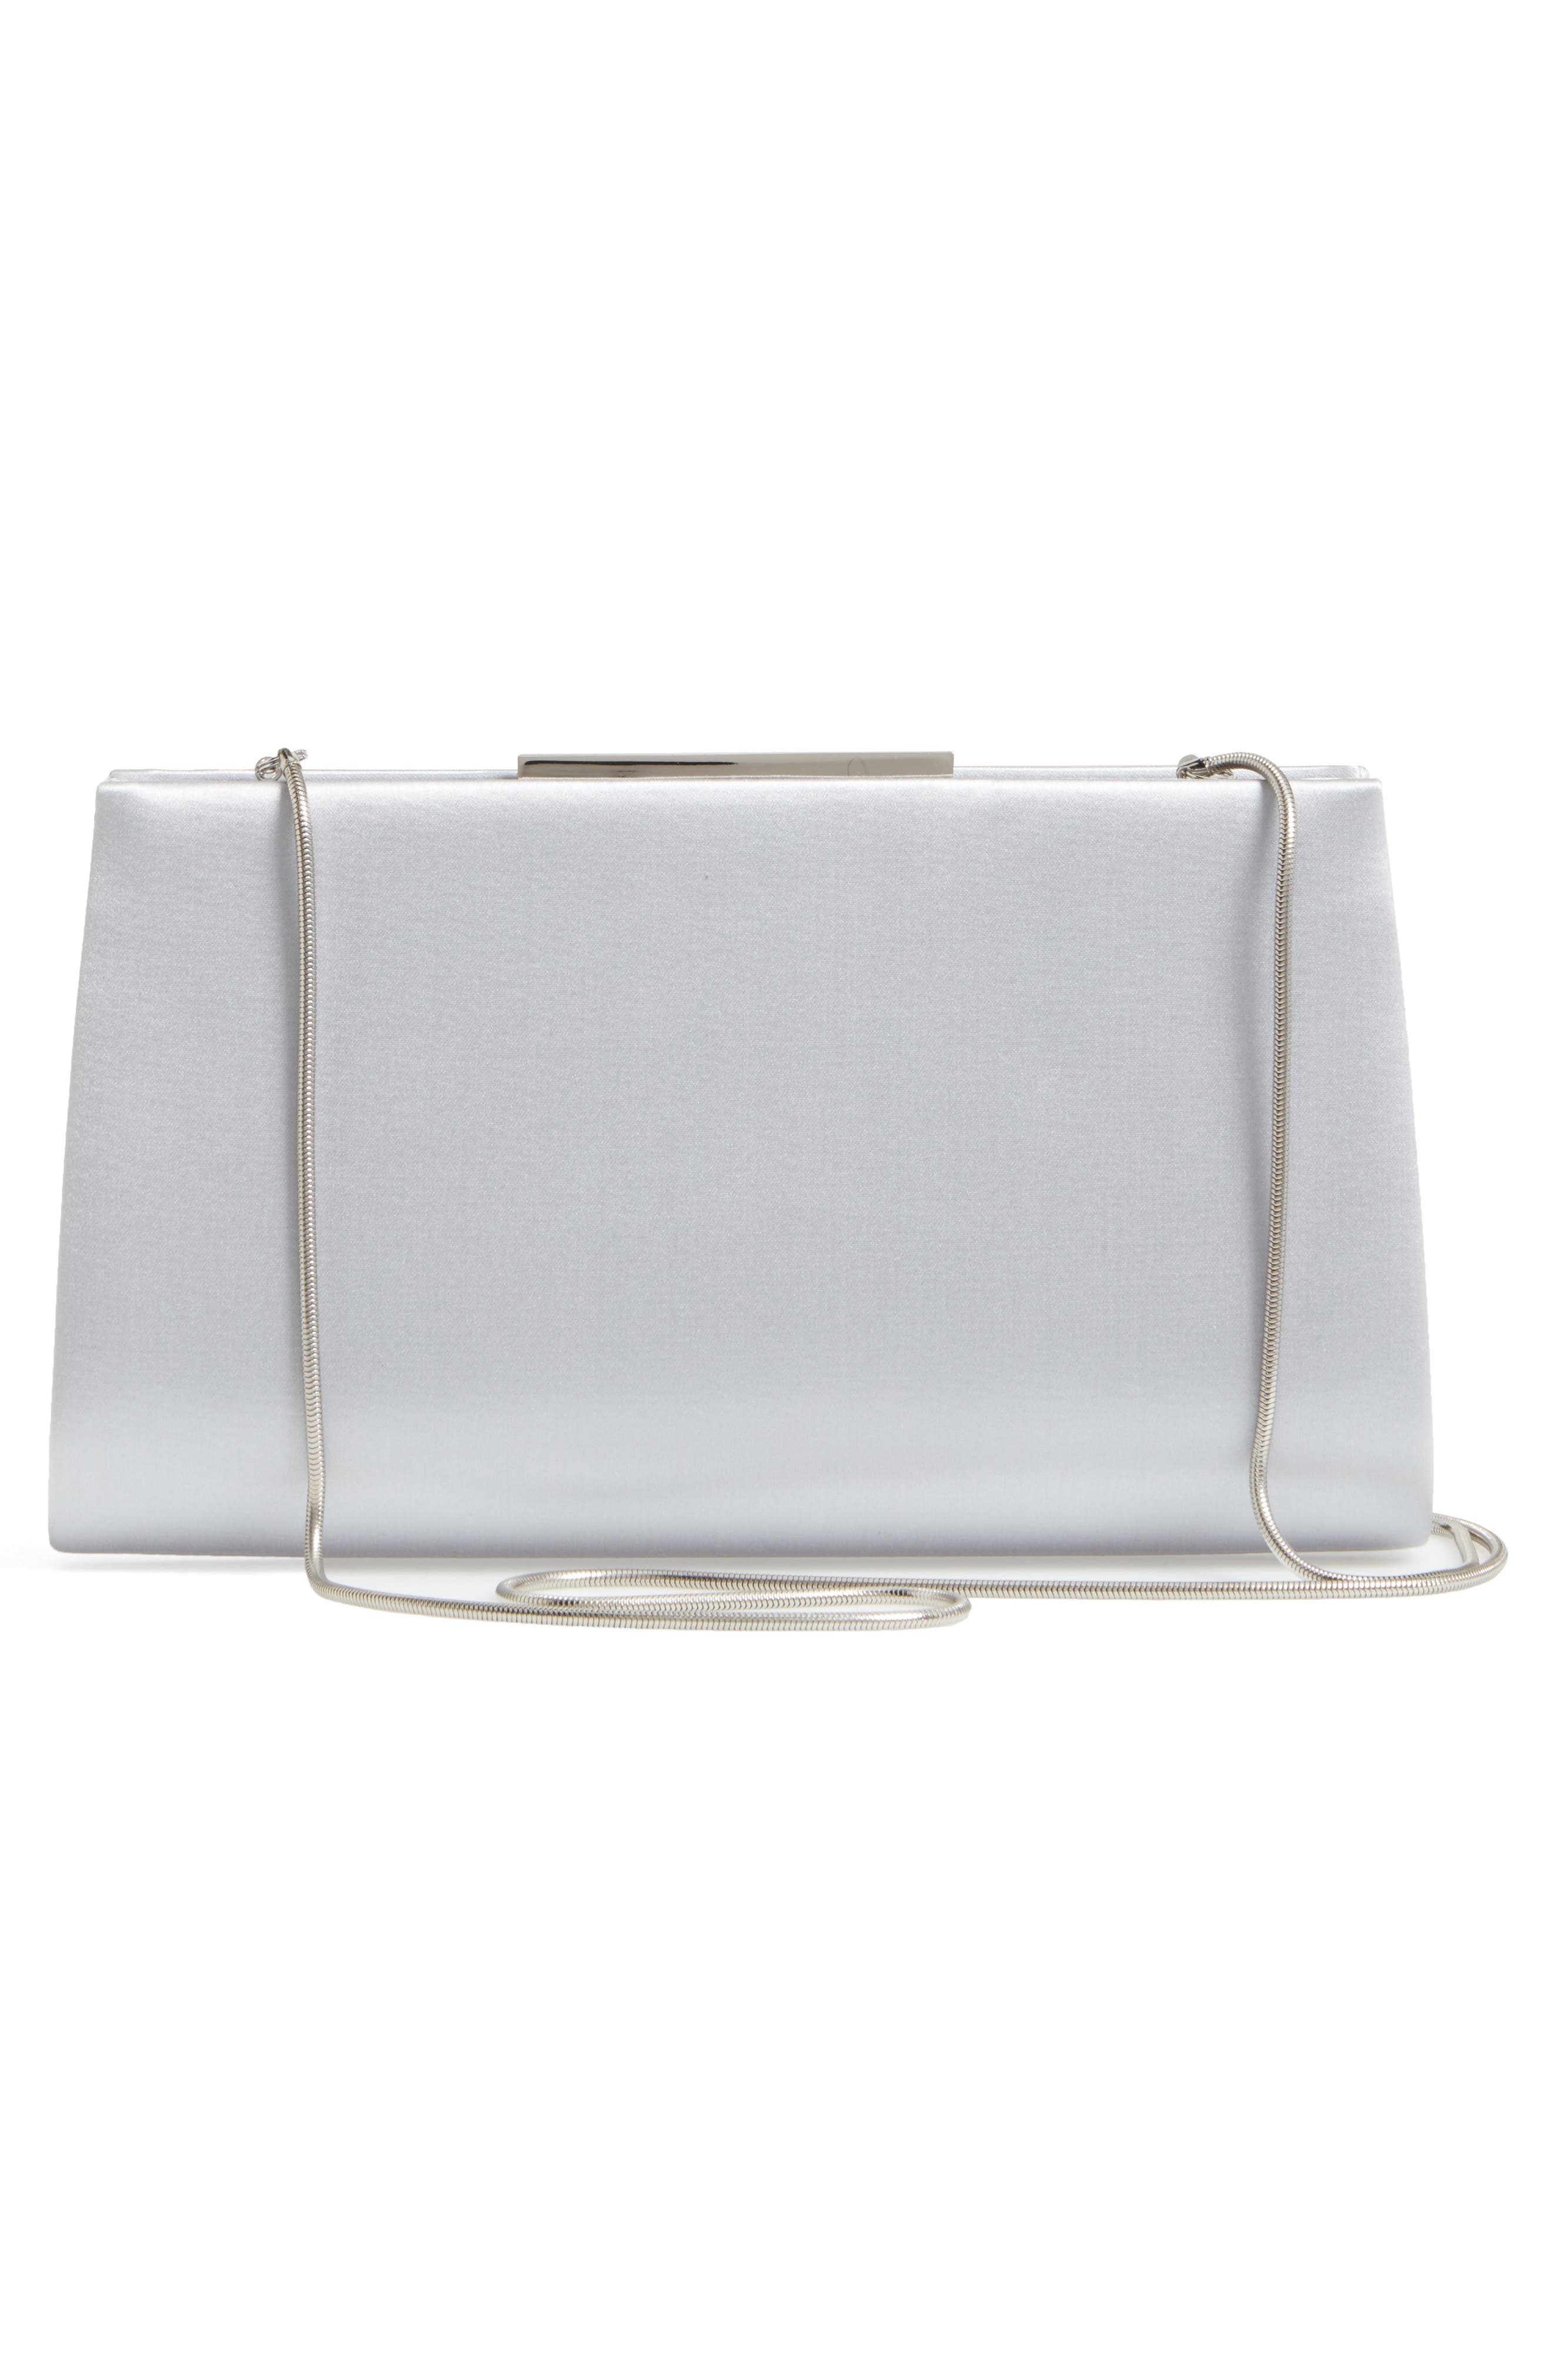 Dare Satin Clutch,                             Alternate thumbnail 7, color,